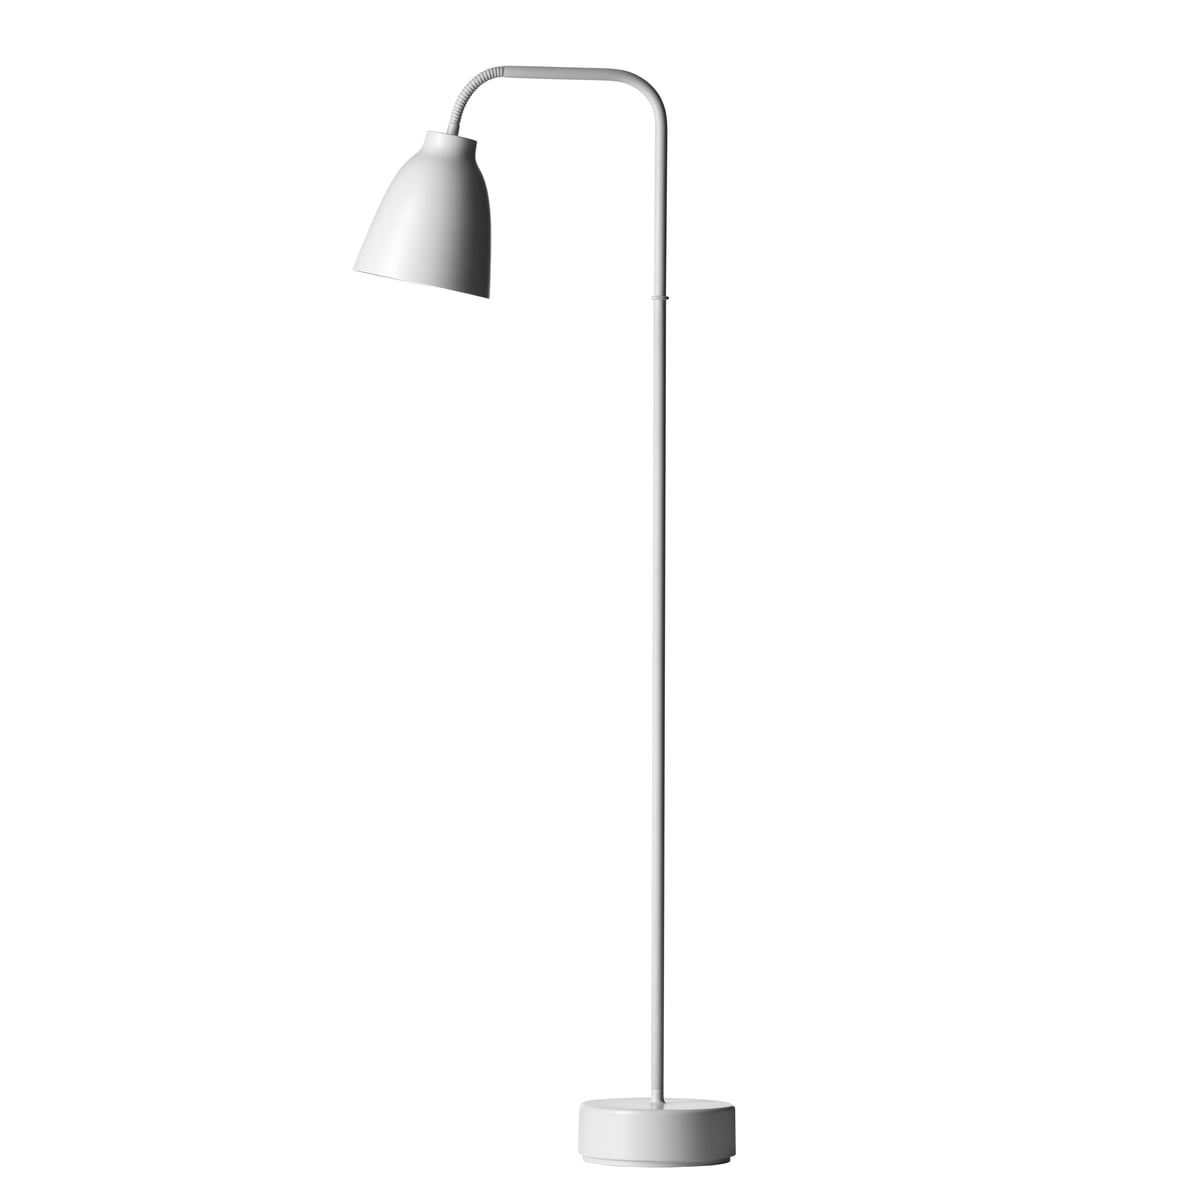 Caravaggio floor lamp read by lightyears caravaggio floor lamp read by lightyears in grey aloadofball Image collections